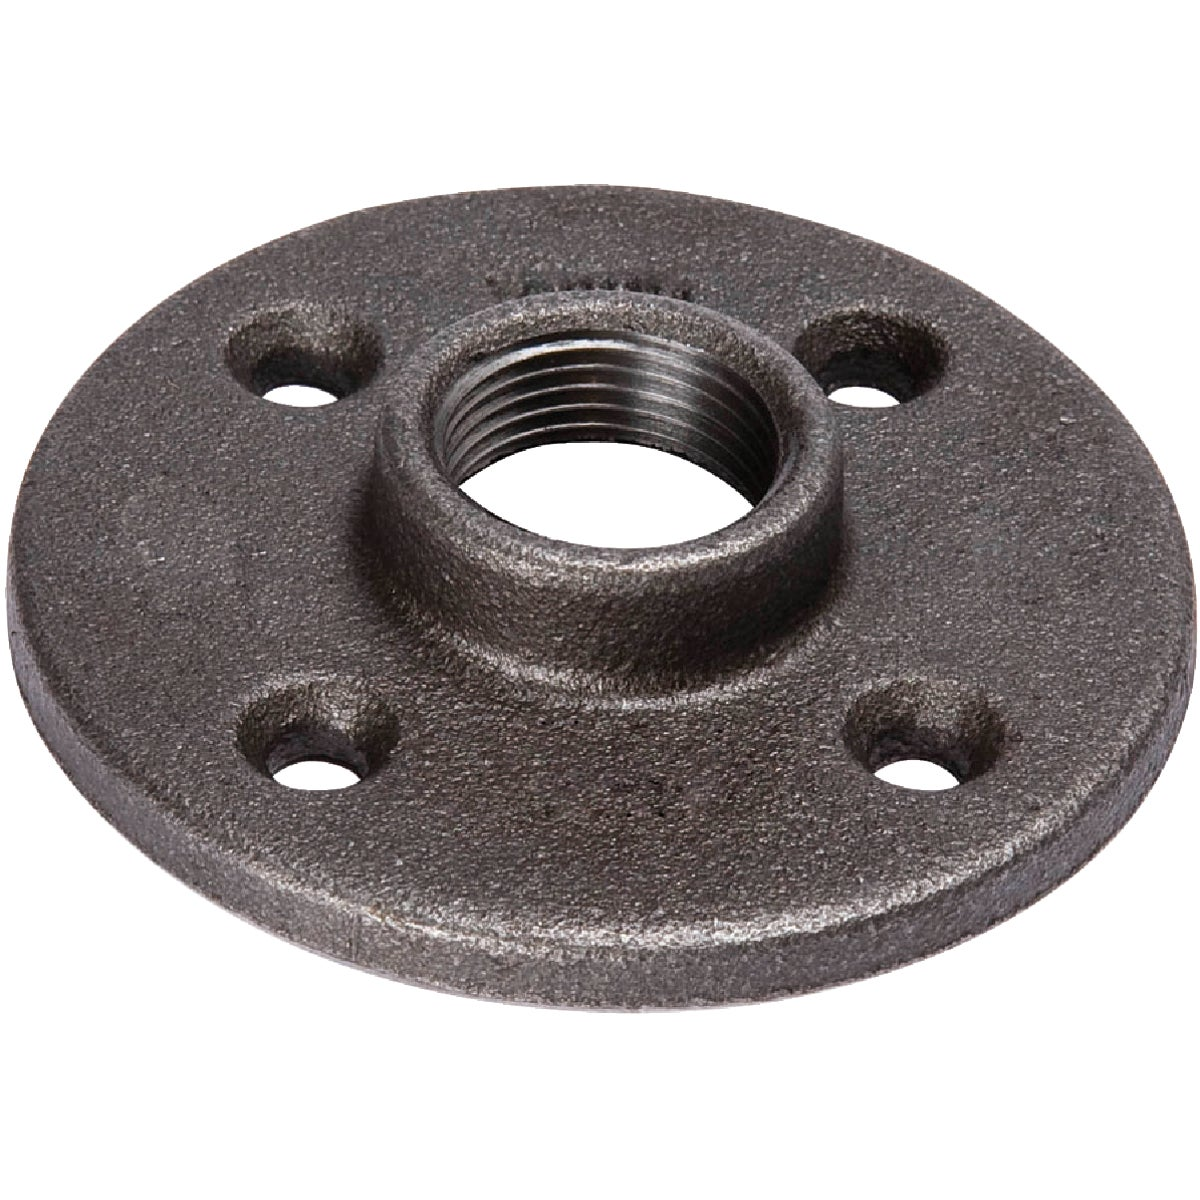 "1-1/4"" BLACK FLANGE - 521-606BG by Mueller B K"